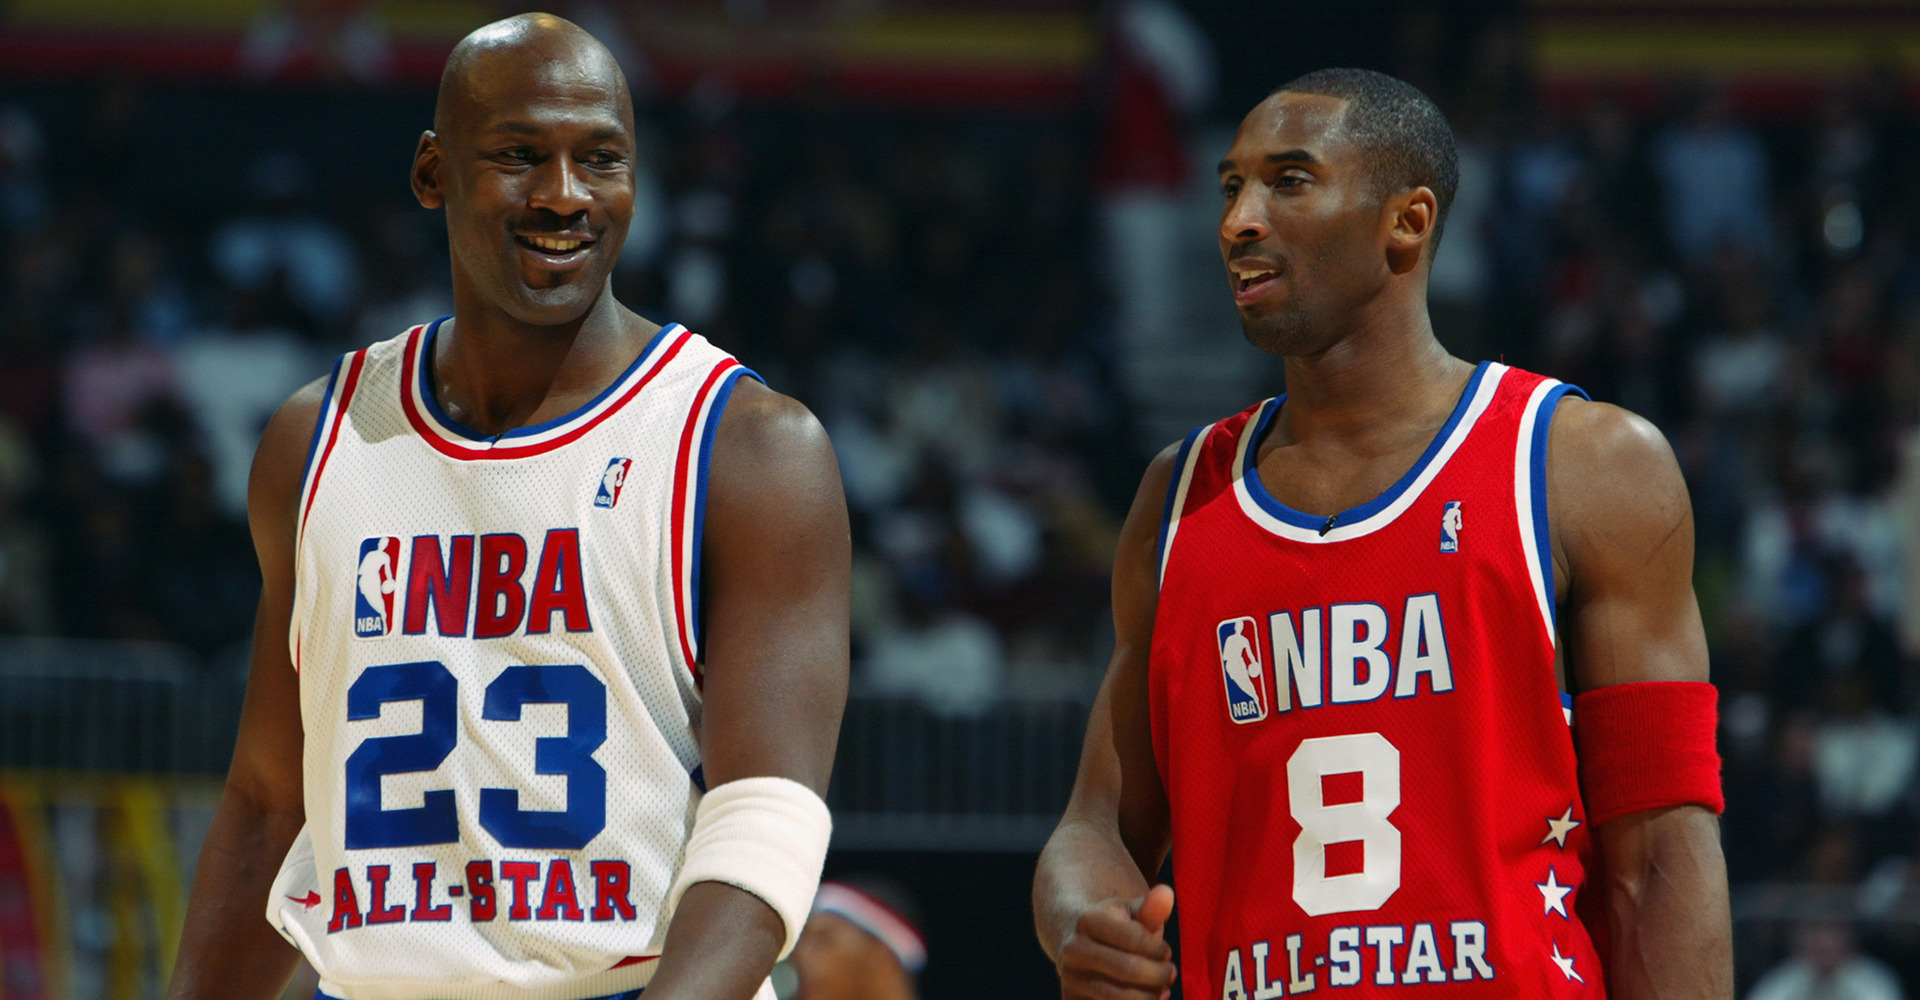 Michael Jordan And Kobe Bryant Chat, One All-Star To Another